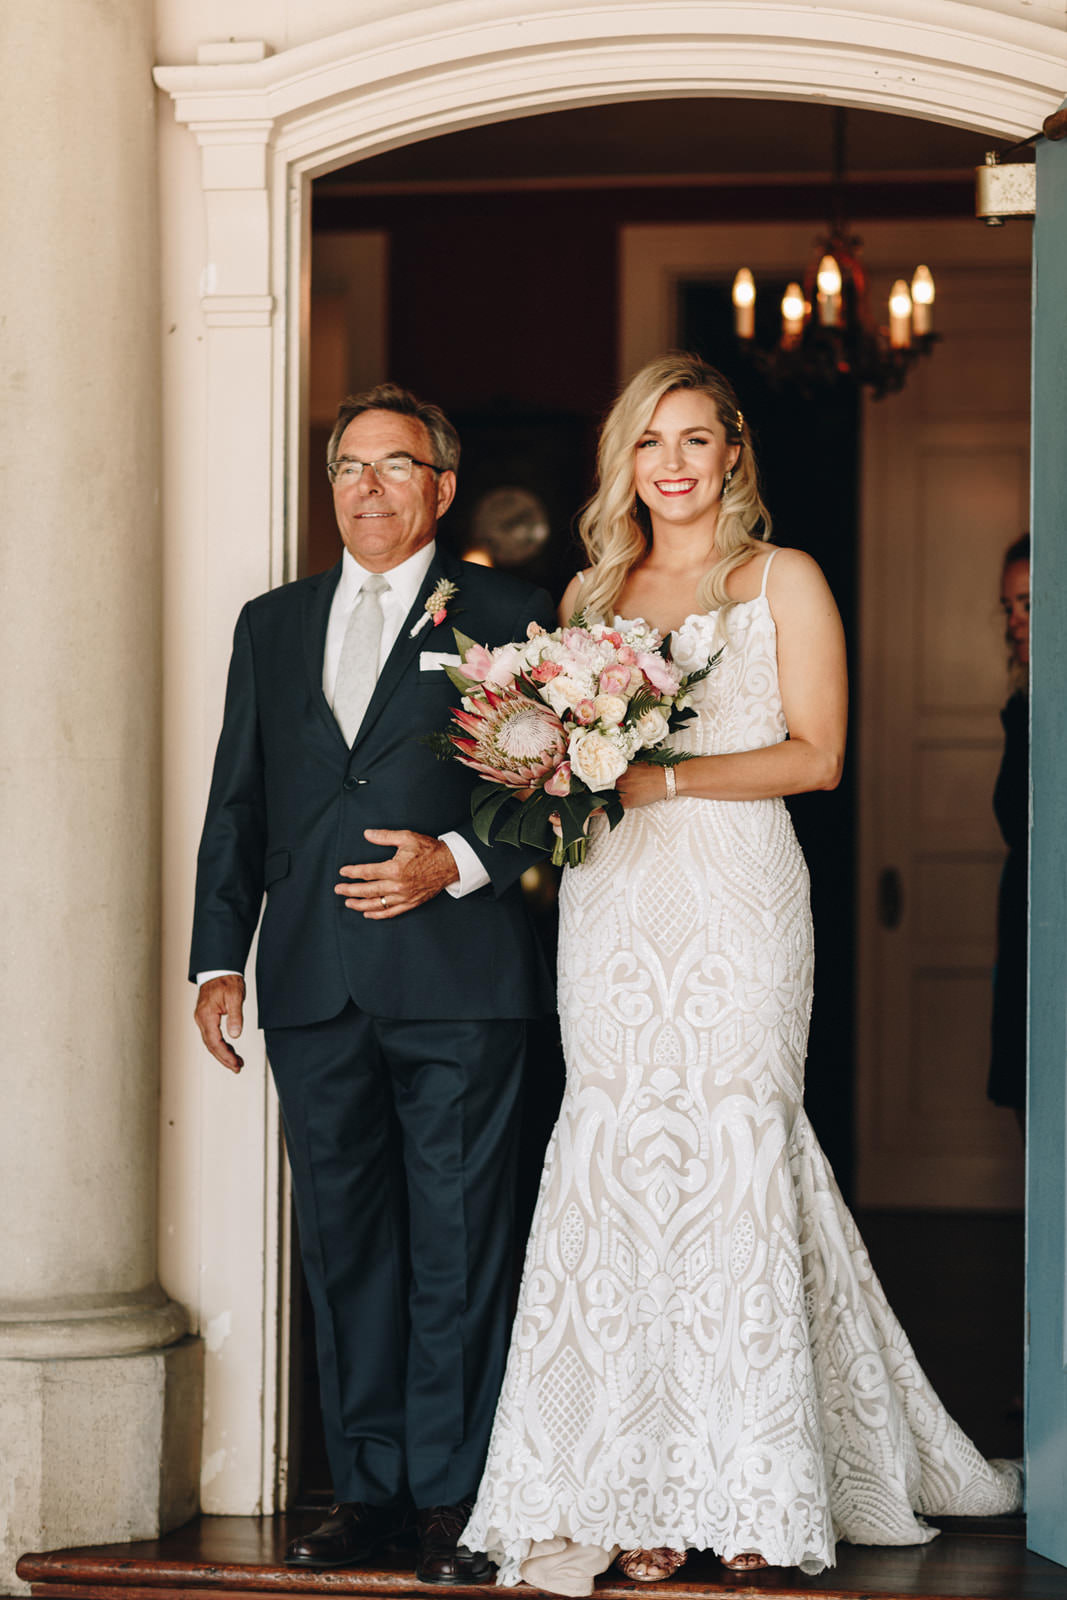 Bride walking out of her mansion wedding venue with her father. She is wearing a spaghetti strap vintage dress and carrying a bridal bouquet with a large king protea.